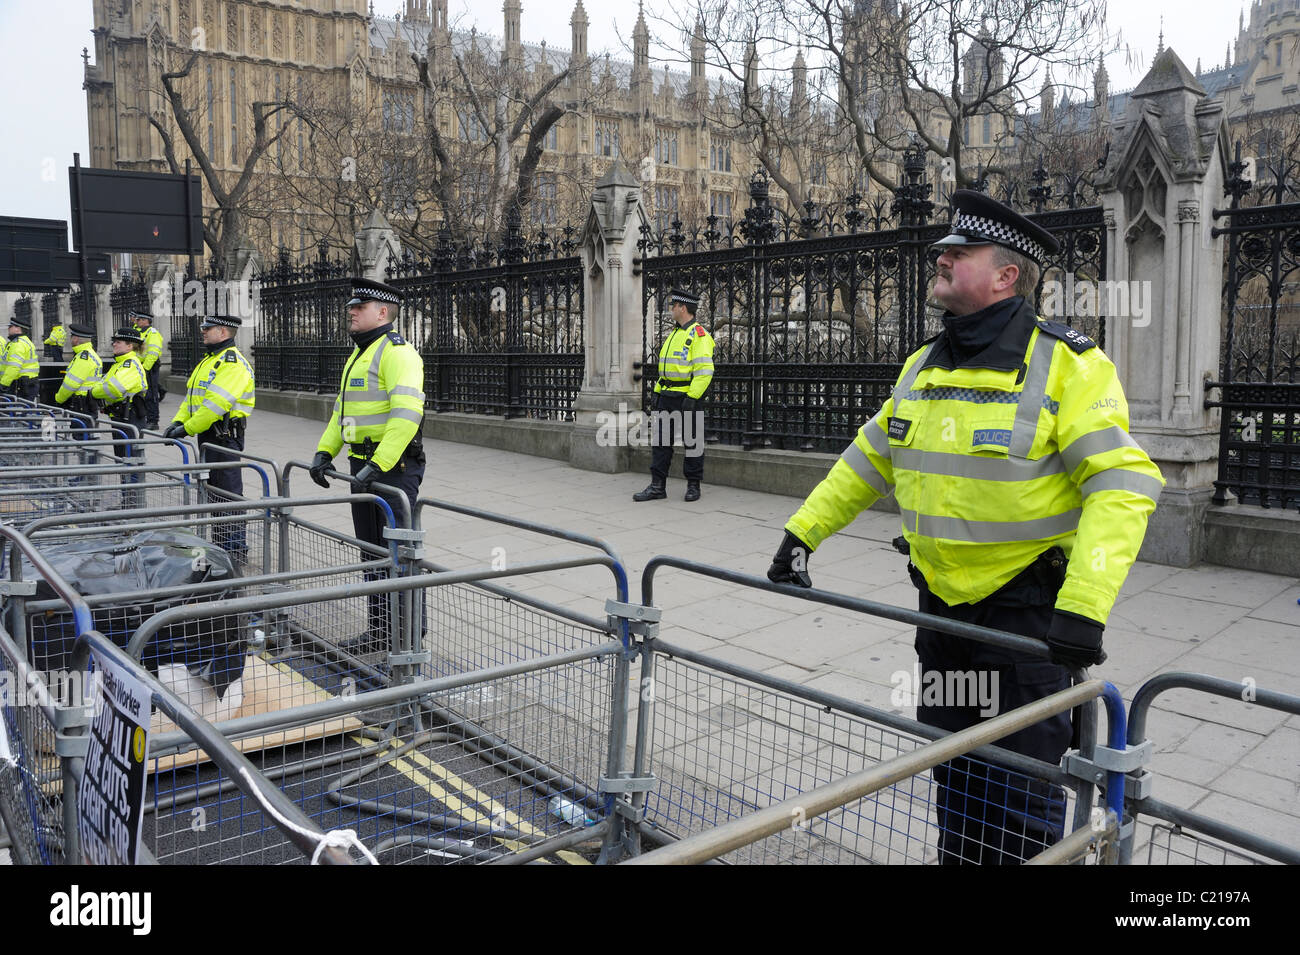 Police at TUC Anti-Spending Cuts March, outside Houses of Parliament, London 26th March 2011 - Stock Image